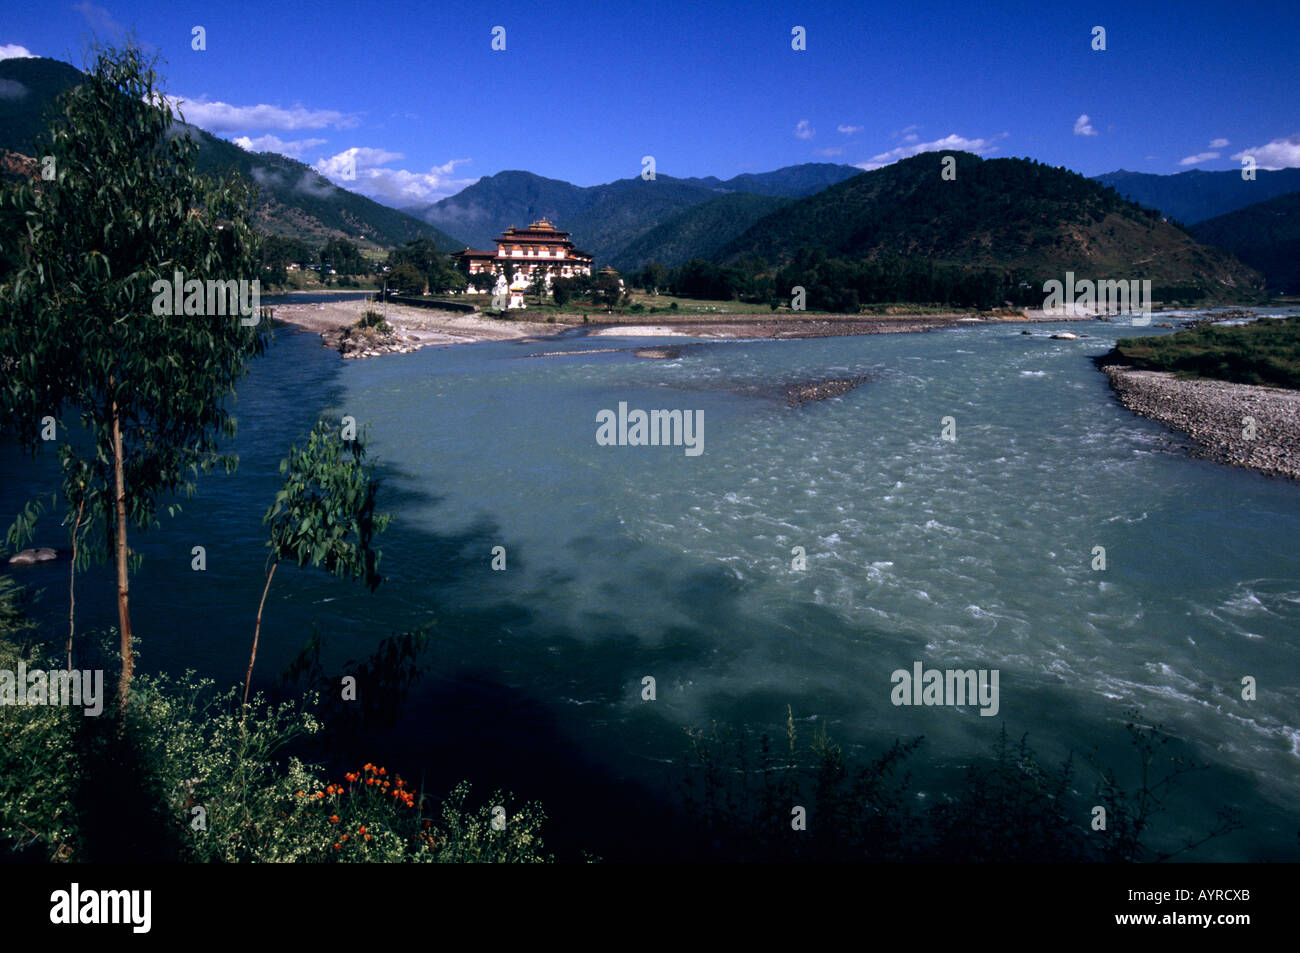 Punakha Dzong and the Mo Chhu river, Bhutan - Stock Image